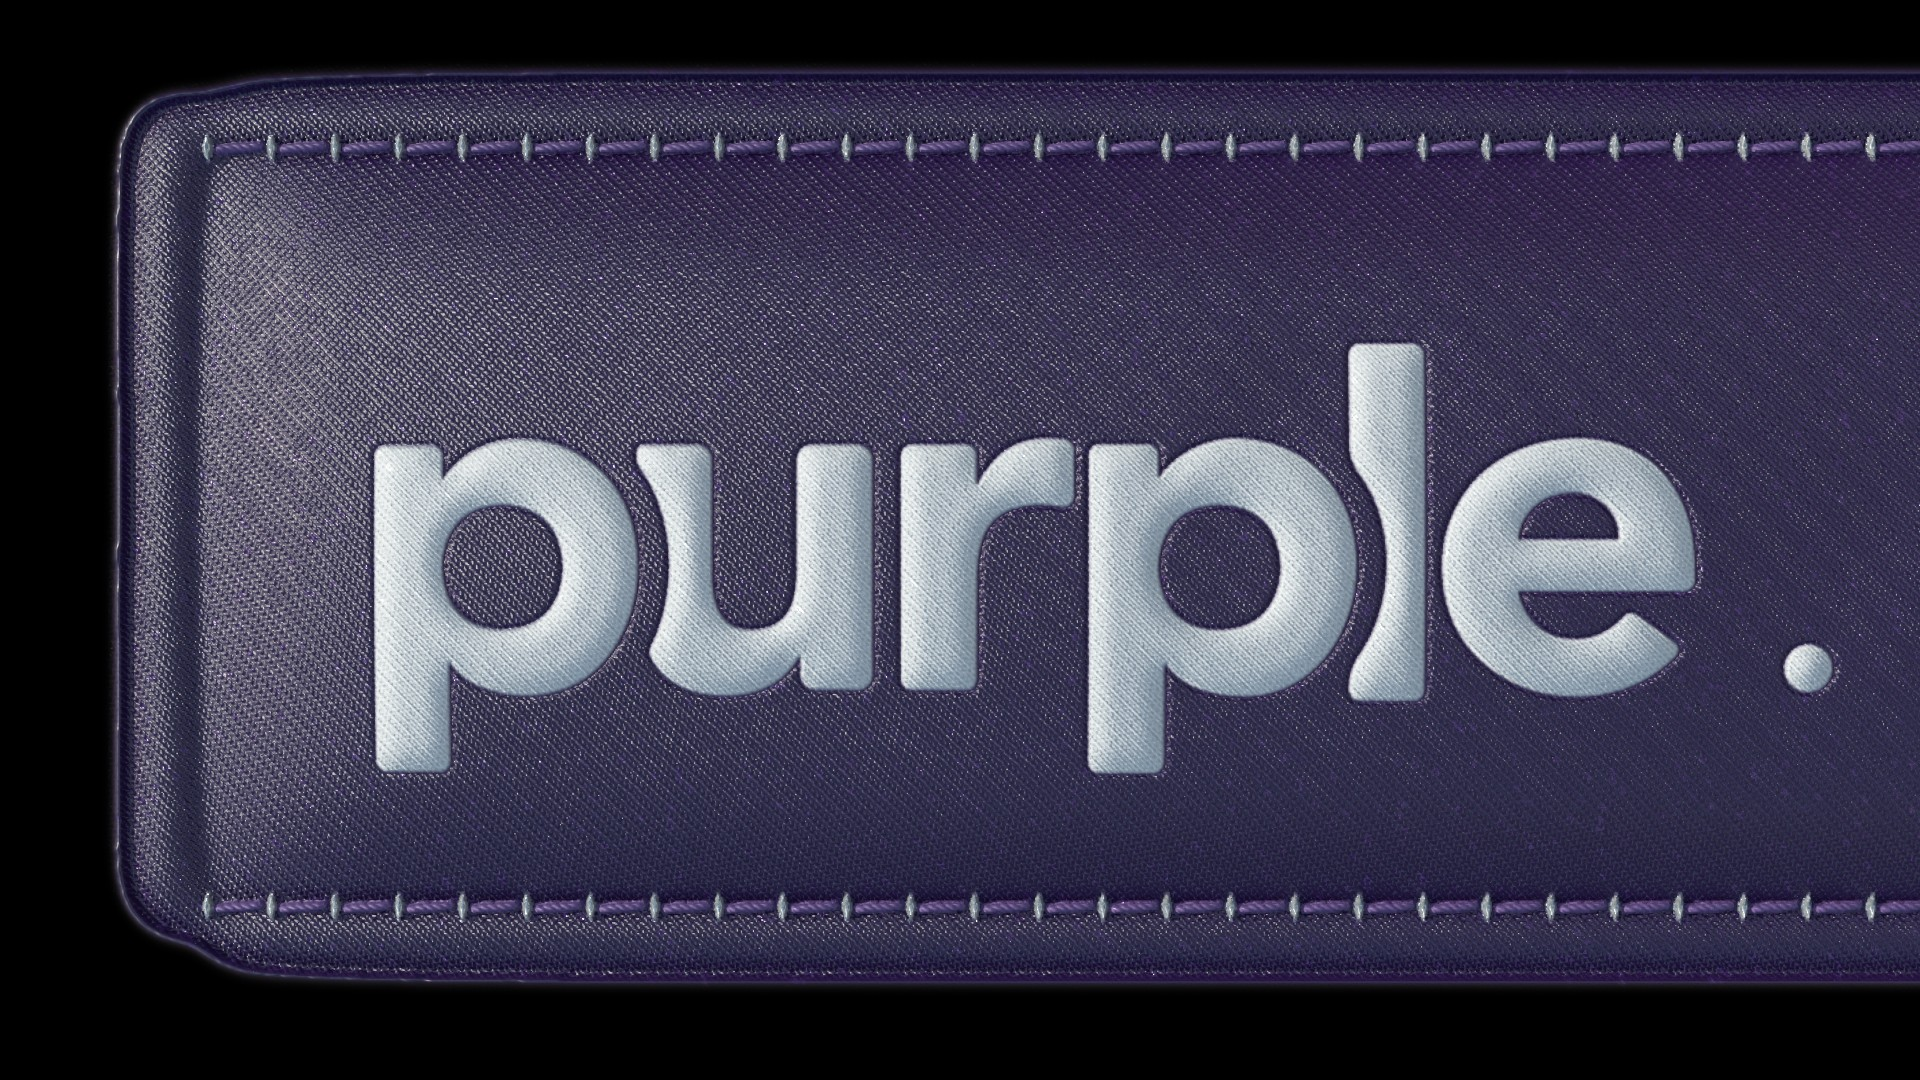 PR_AC_Label_Development_v003